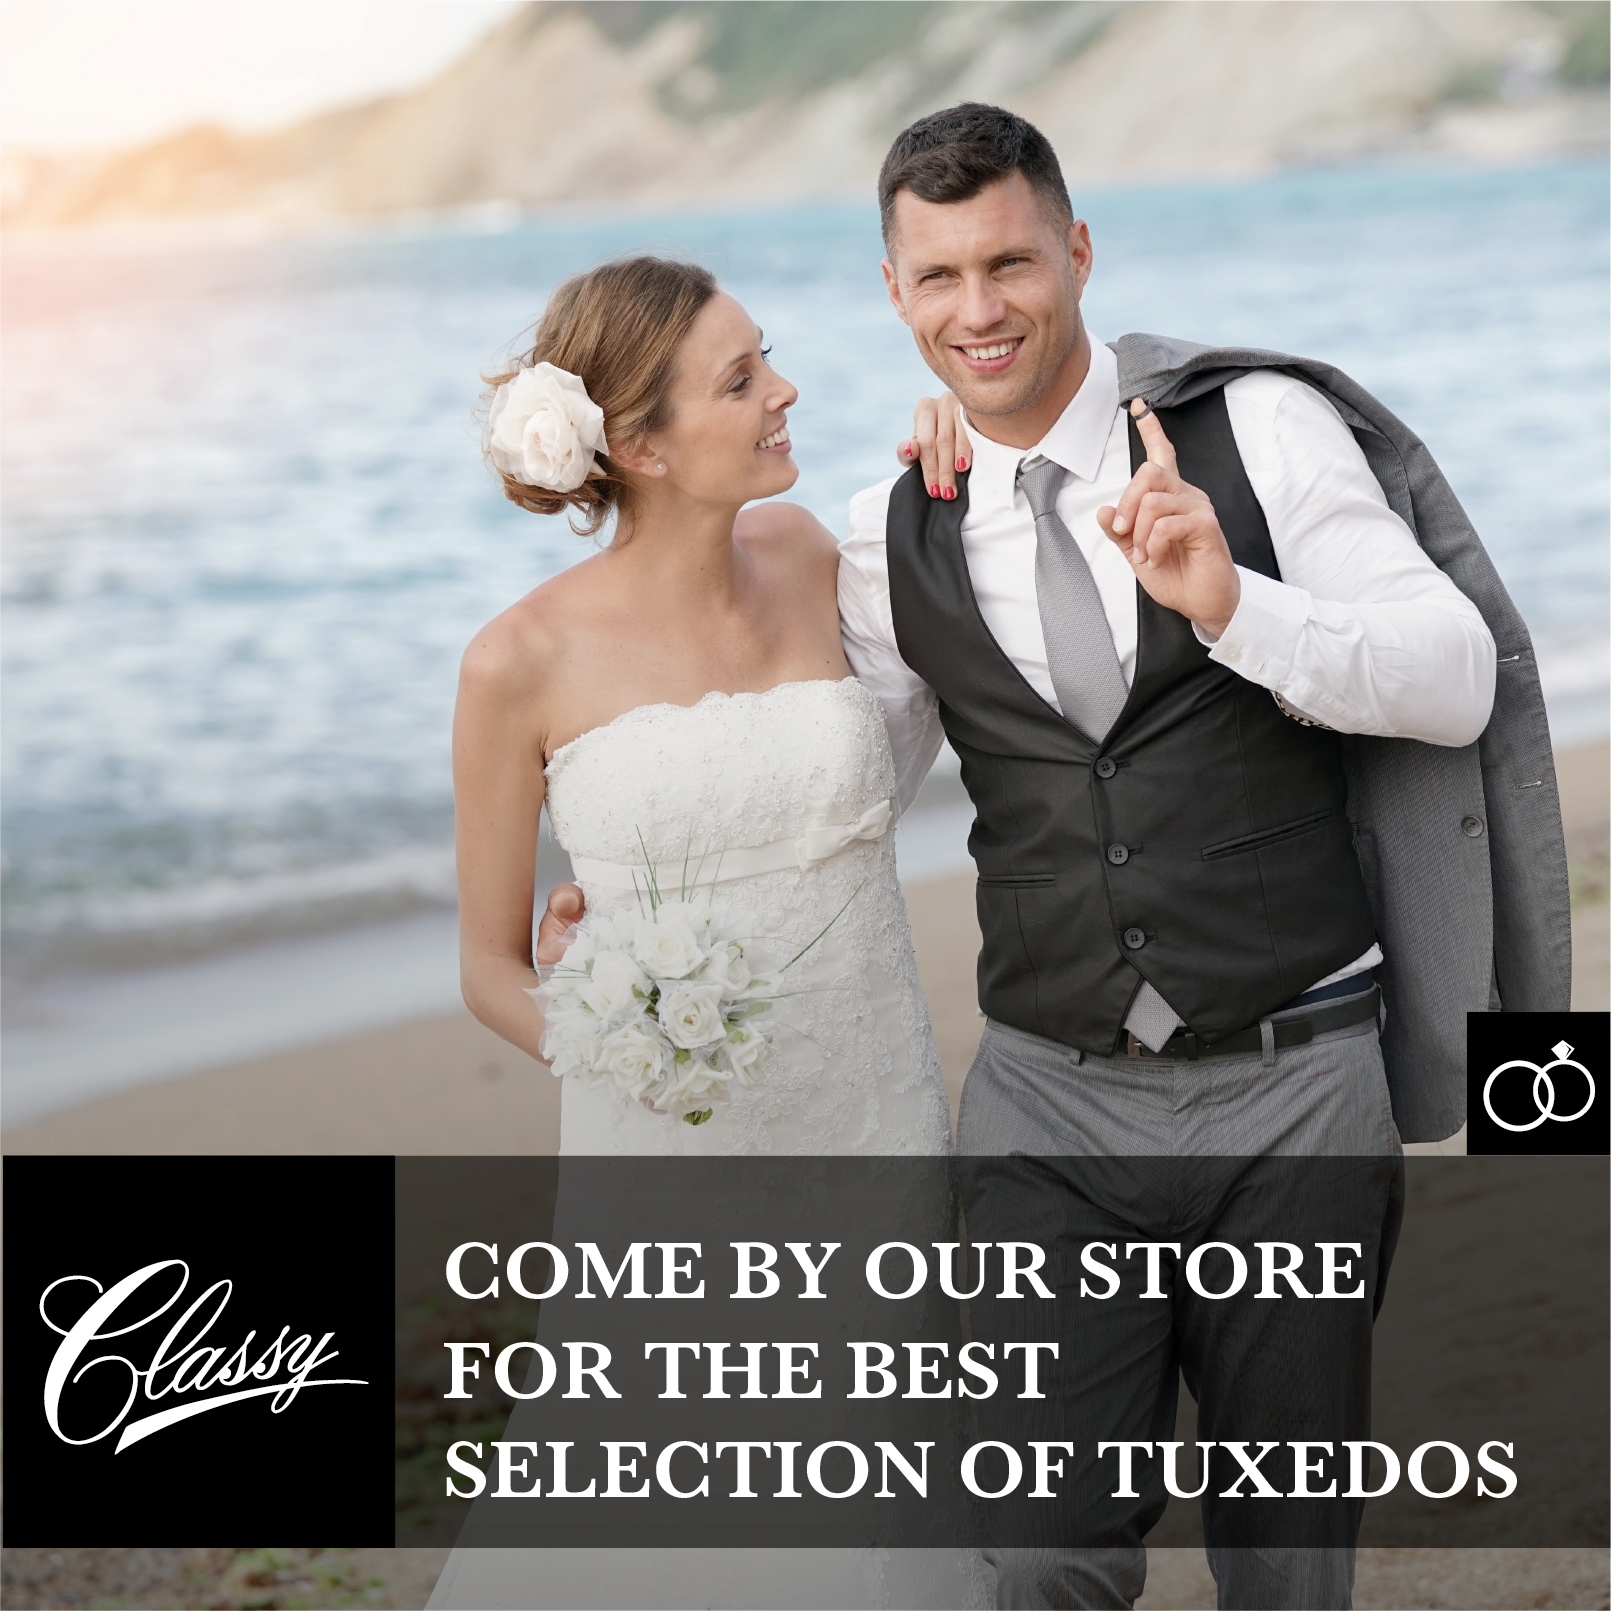 Wedding Gowns Montreal: Are You Invited To A Wedding In A Warm Destination This